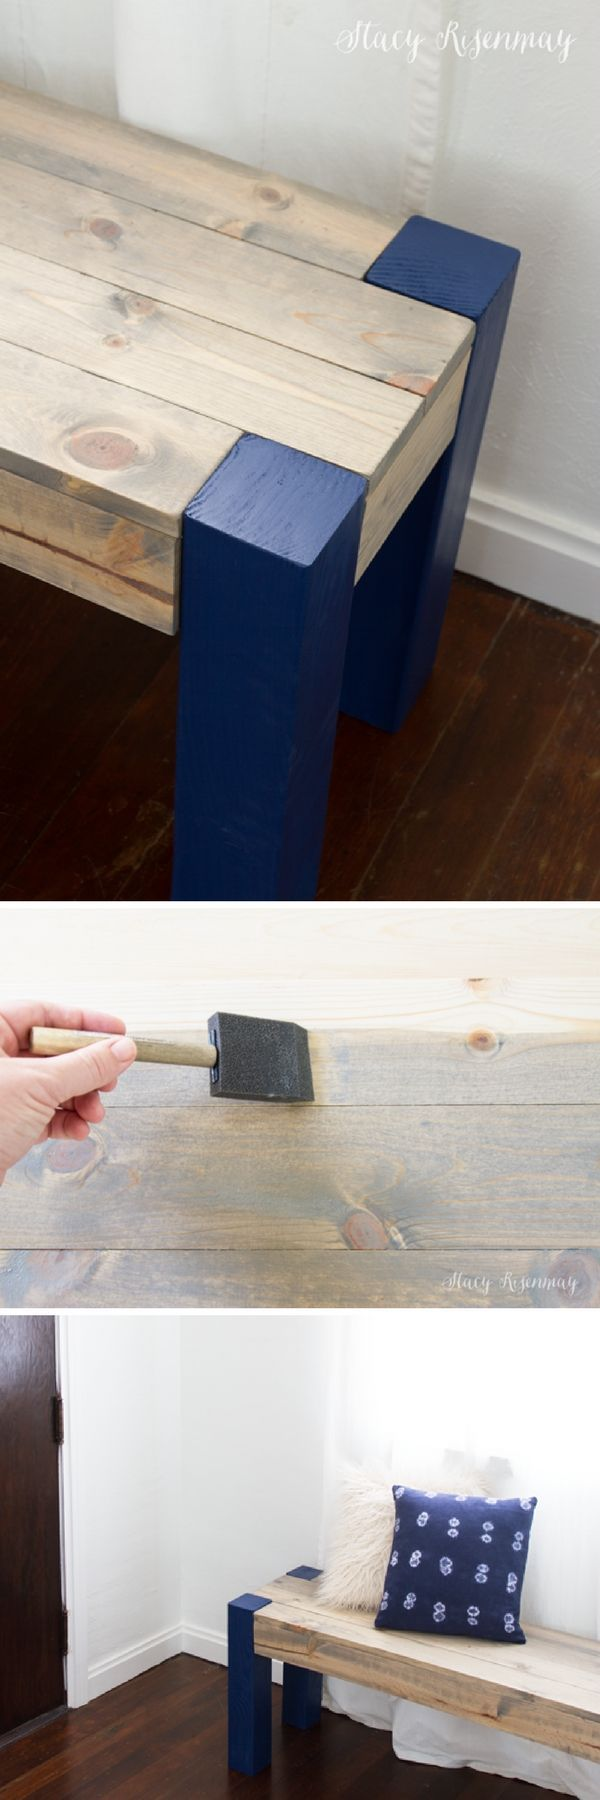 Check out this easy idea on how to make a #DIY bench for #homedecor on a #budget #crafts #project @istandarddesign